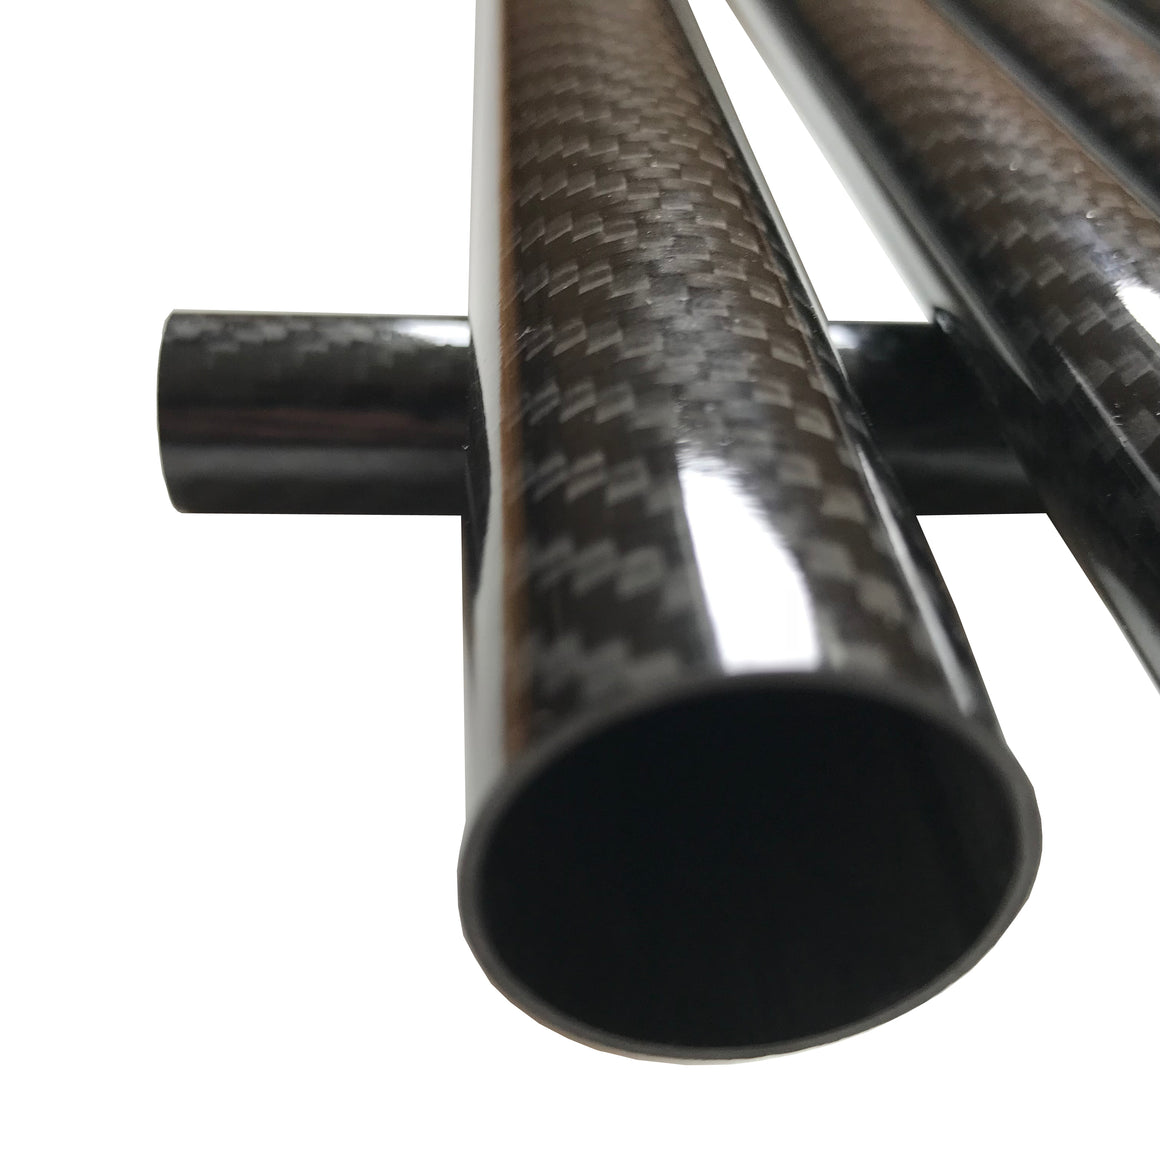 Carbon Fiber Tubing  - 8mm x 6mm x 500mm - 3K Roll Wrapped 100% Carbon Fiber Tube Glossy